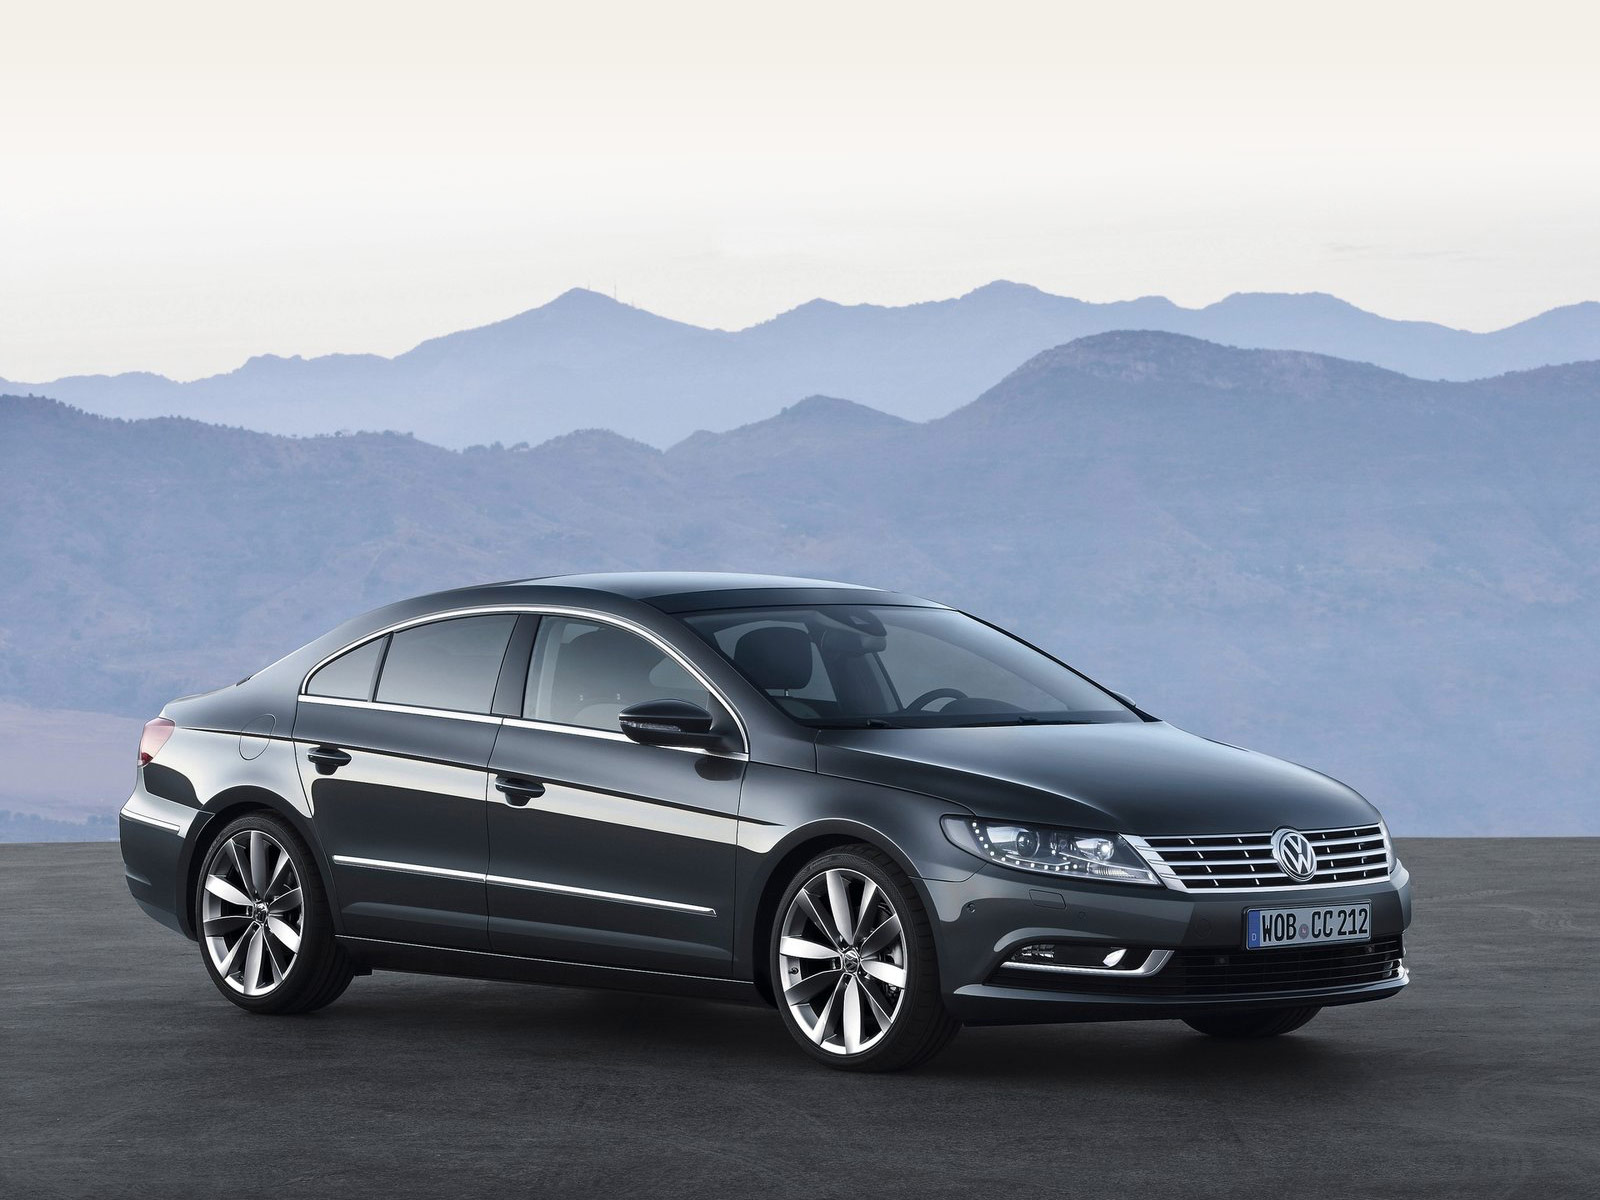 2013 Volkswagen Passat CC VW car desktop wallpaper  Auto